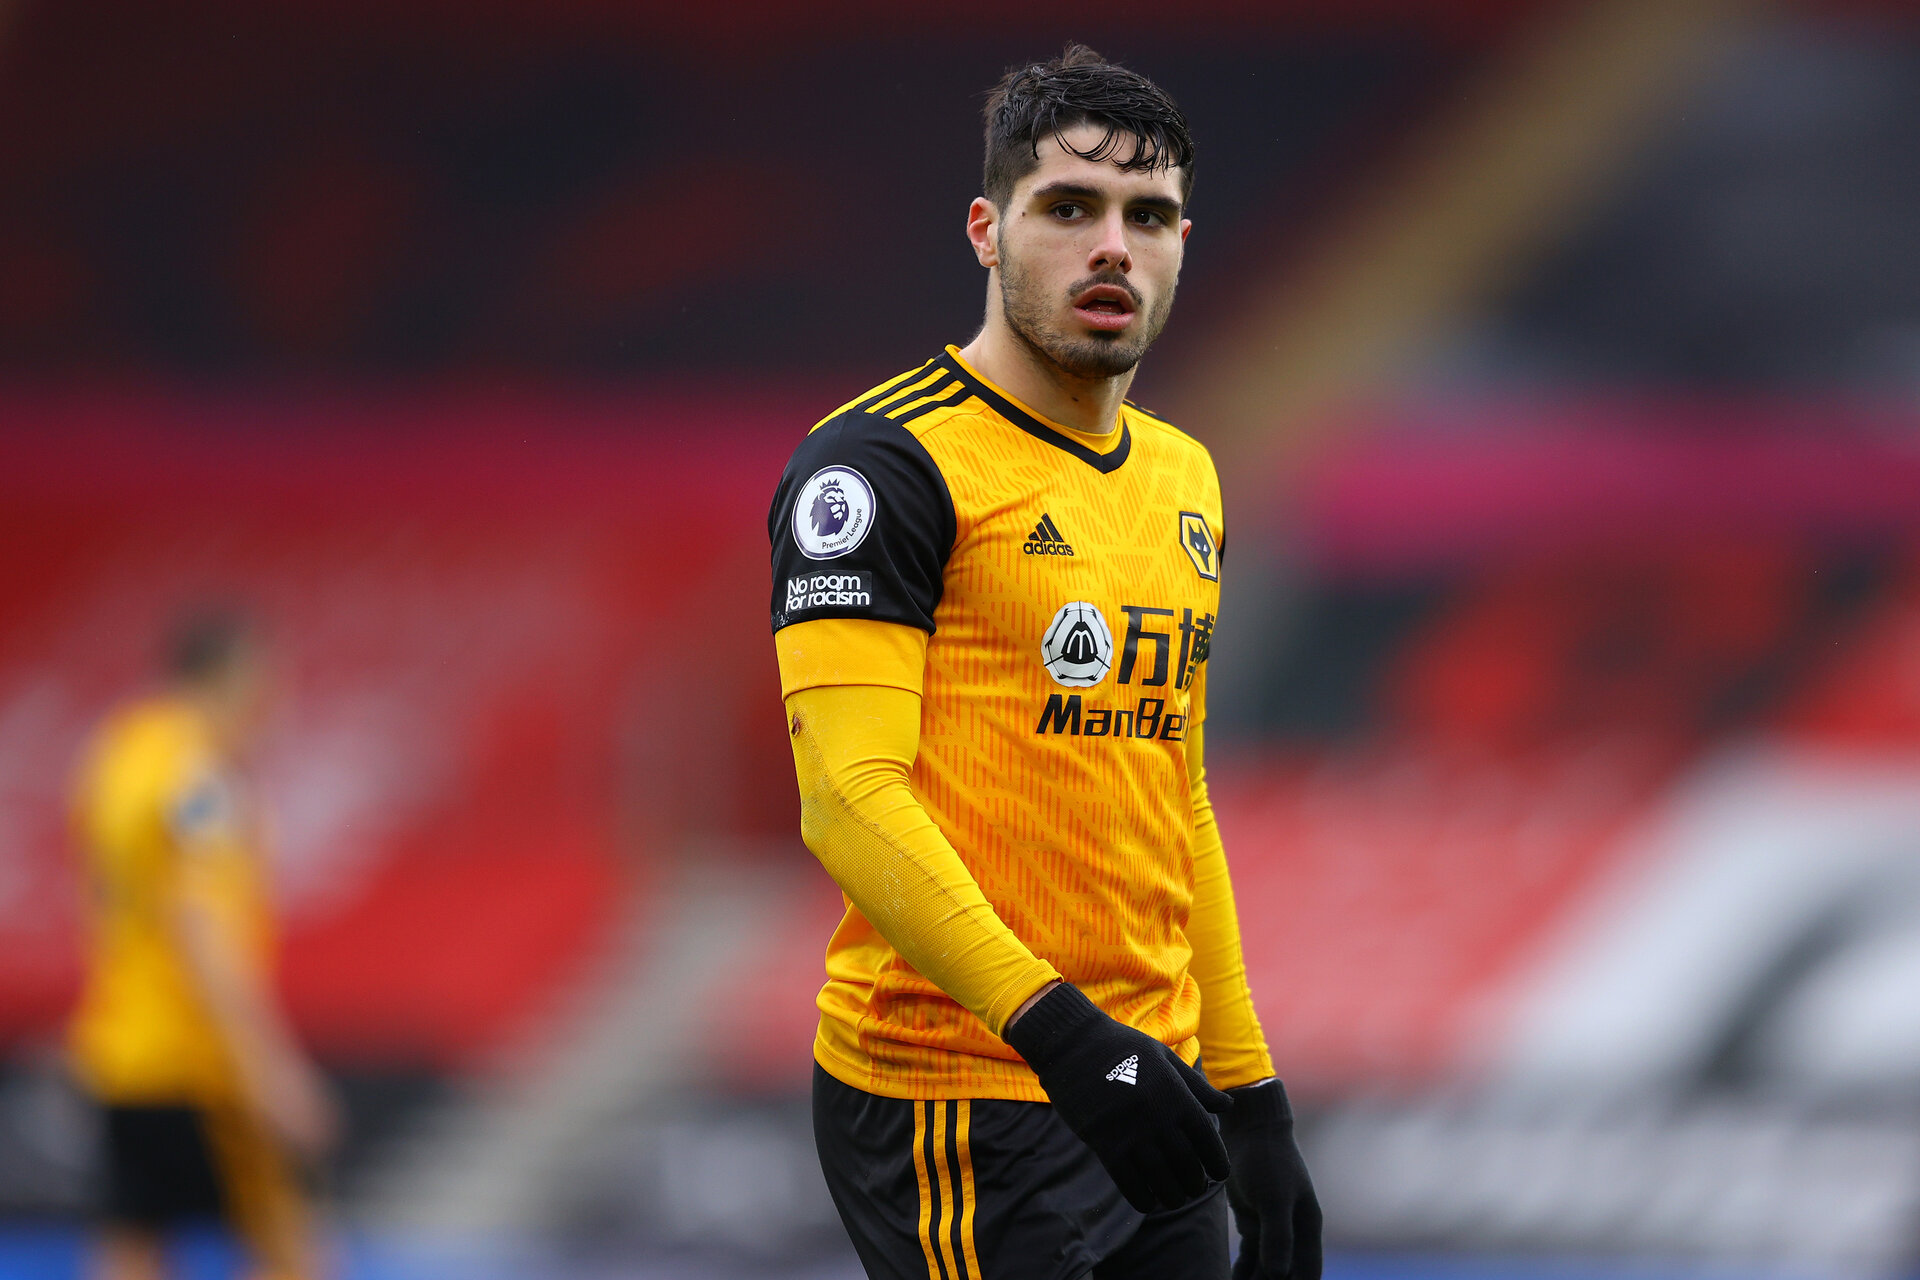 SOUTHAMPTON, ENGLAND - FEBRUARY 14: Pedro Neto of Wolves in action during the Premier League match between Southampton and Wolverhampton Wanderers at St Mary's Stadium on February 14, 2021 in Southampton, England. Sporting stadiums around the UK remain under strict restrictions due to the Coronavirus Pandemic as Government social distancing laws prohibit fans inside venues resulting in games being played behind closed doors. (Photo by Richard Heathcote/Getty Images)